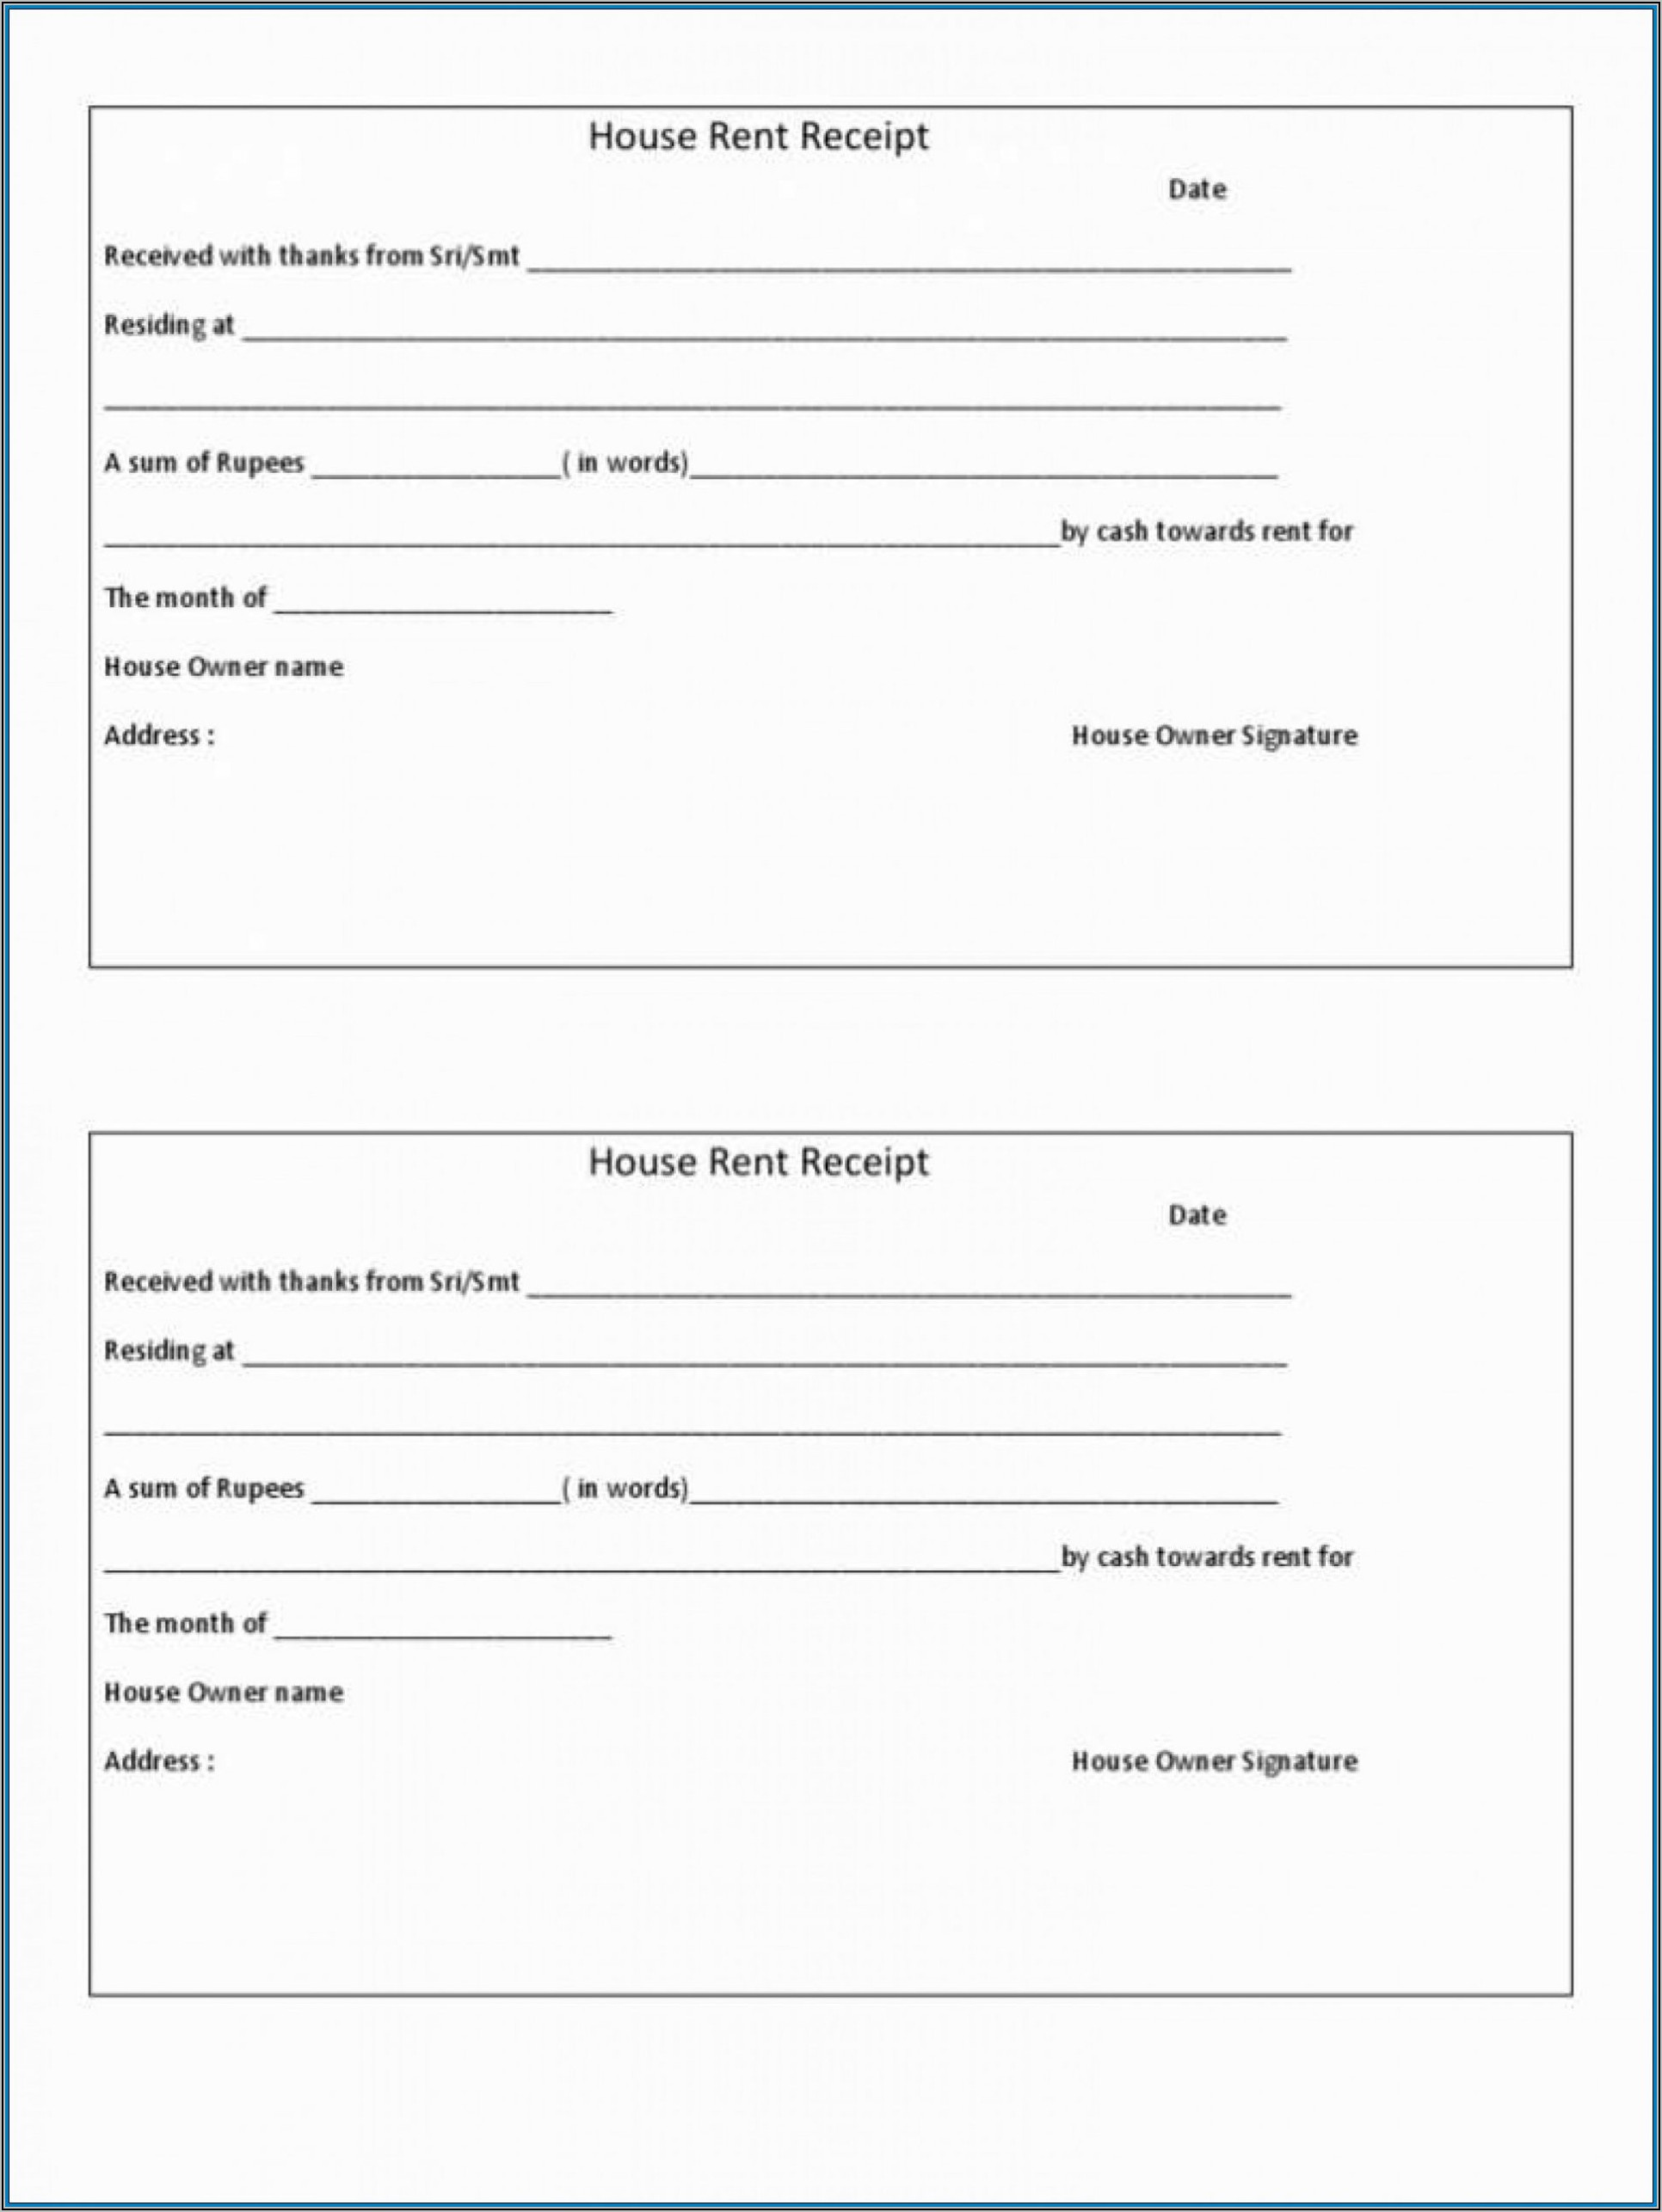 Downloadable House Rent Receipt Template Word Document